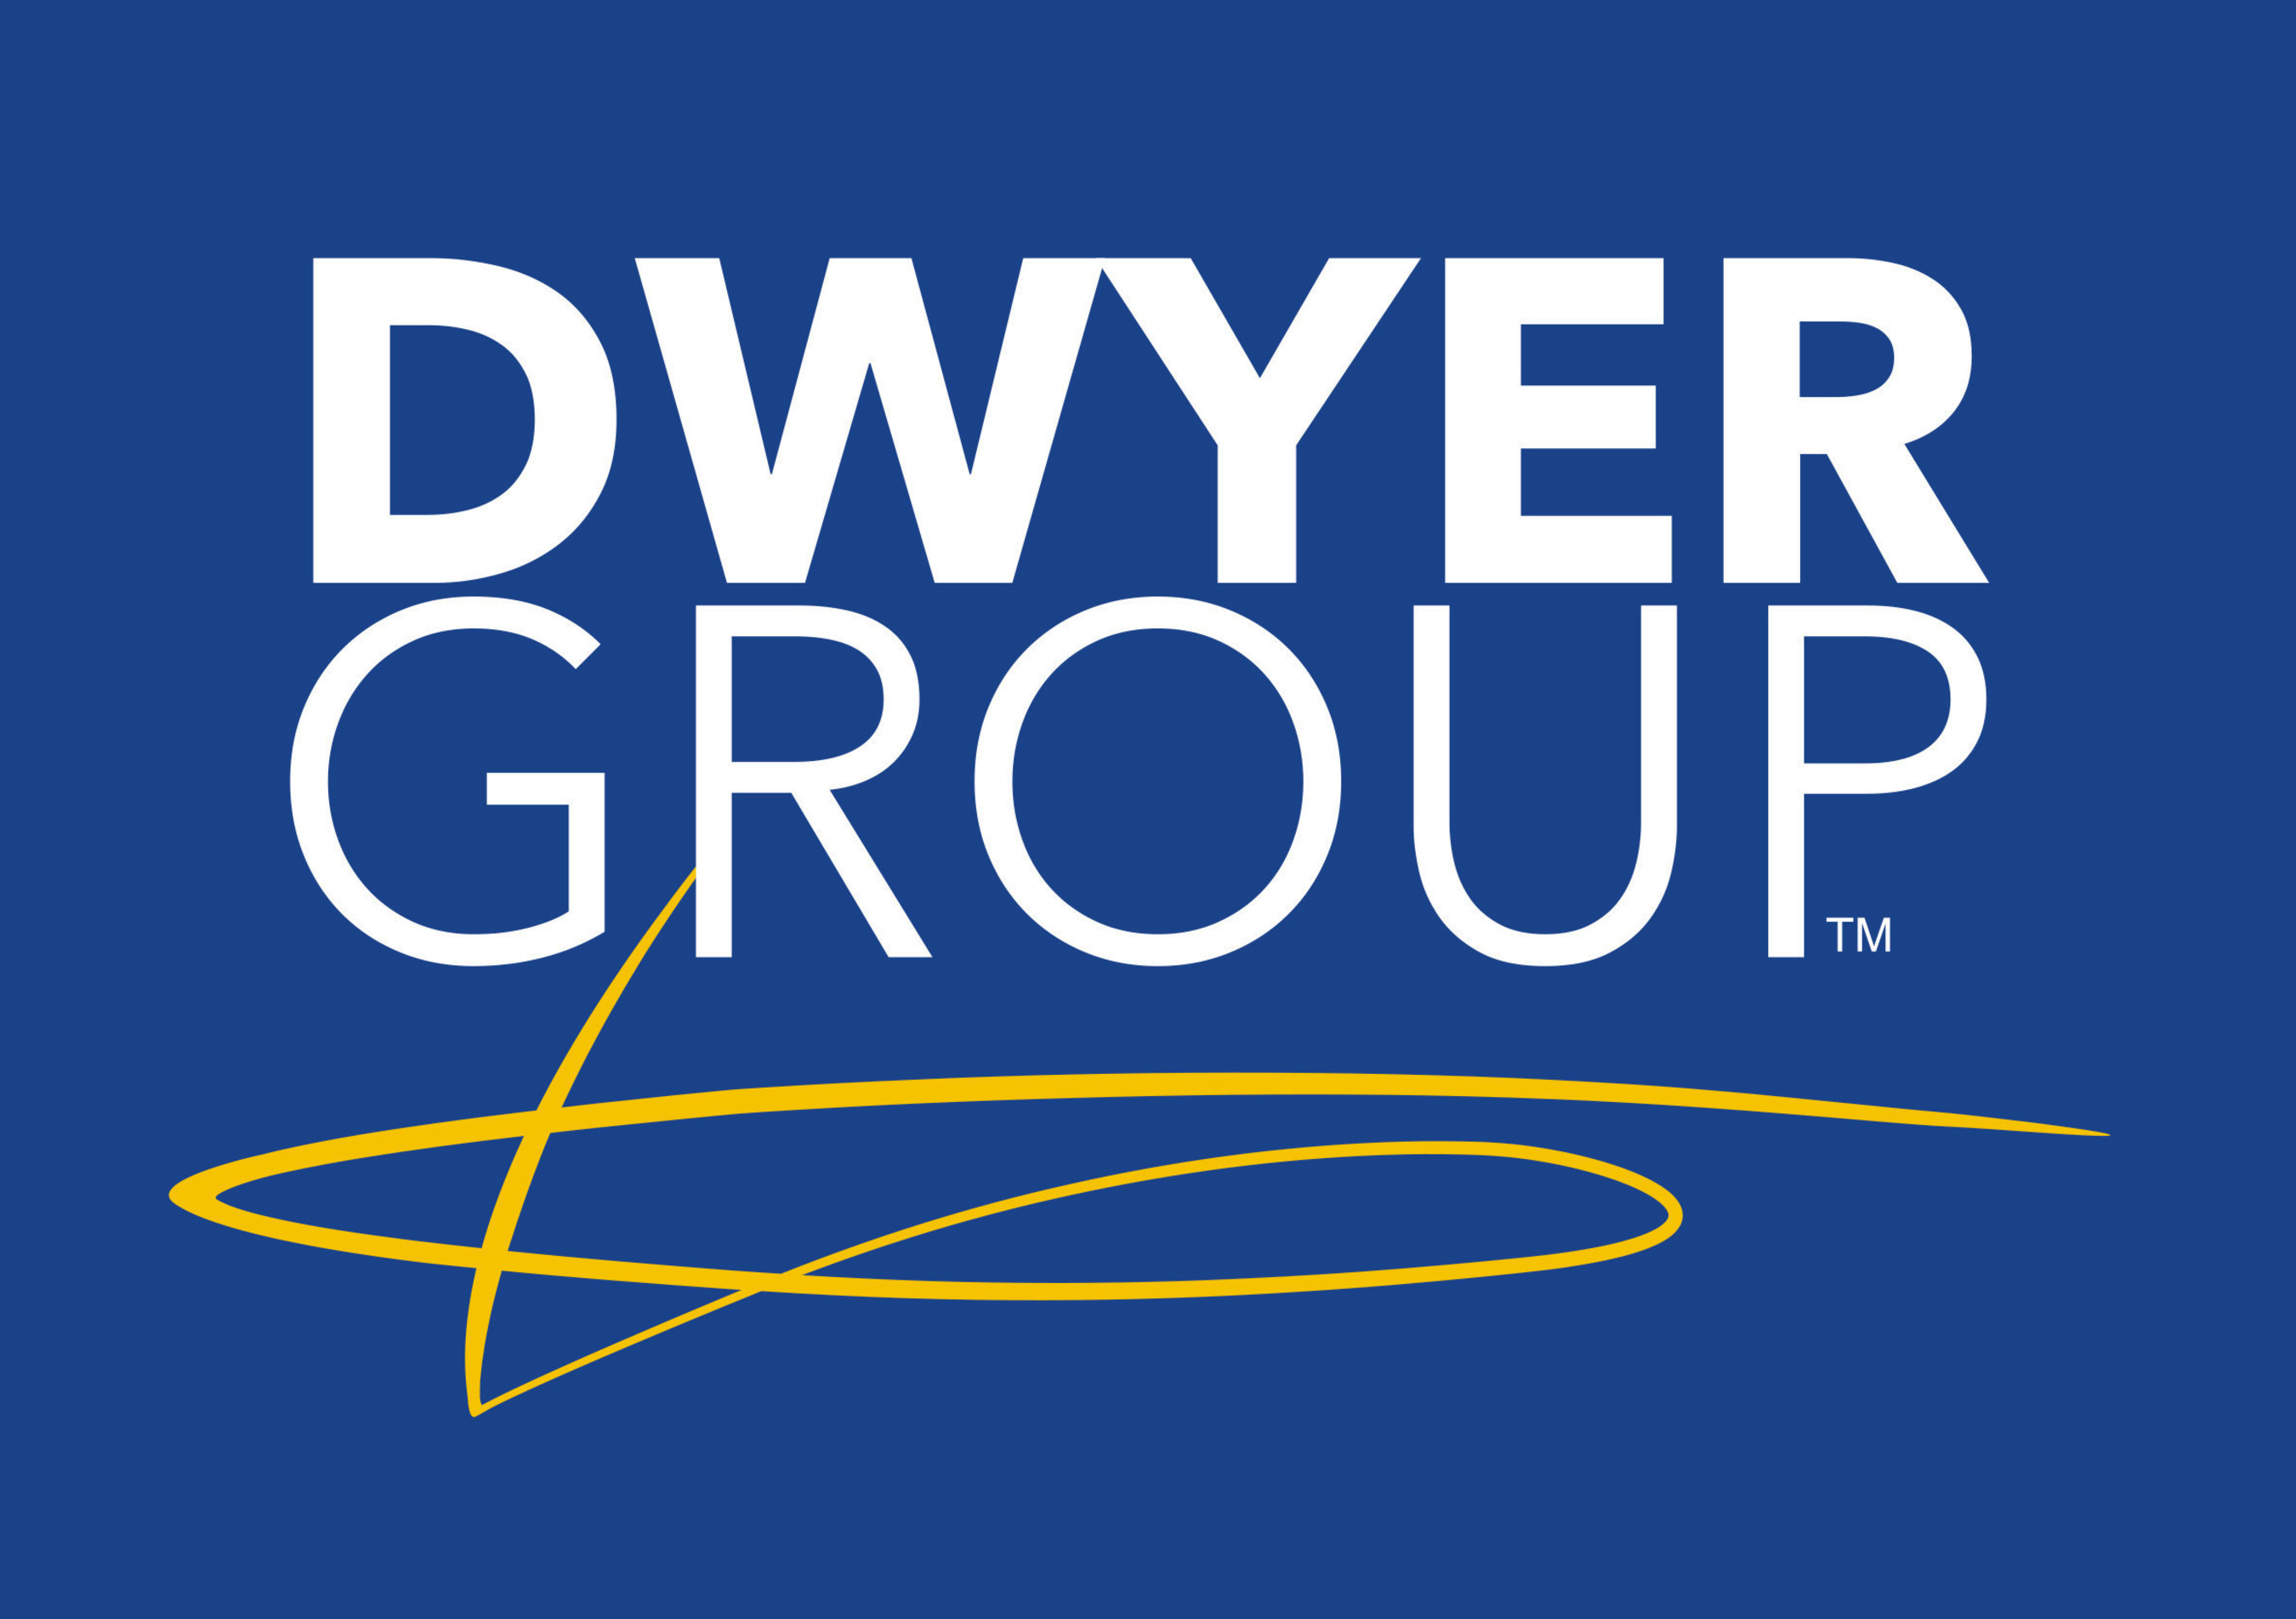 Dwyer Group Acquires Service Brands International, Adding